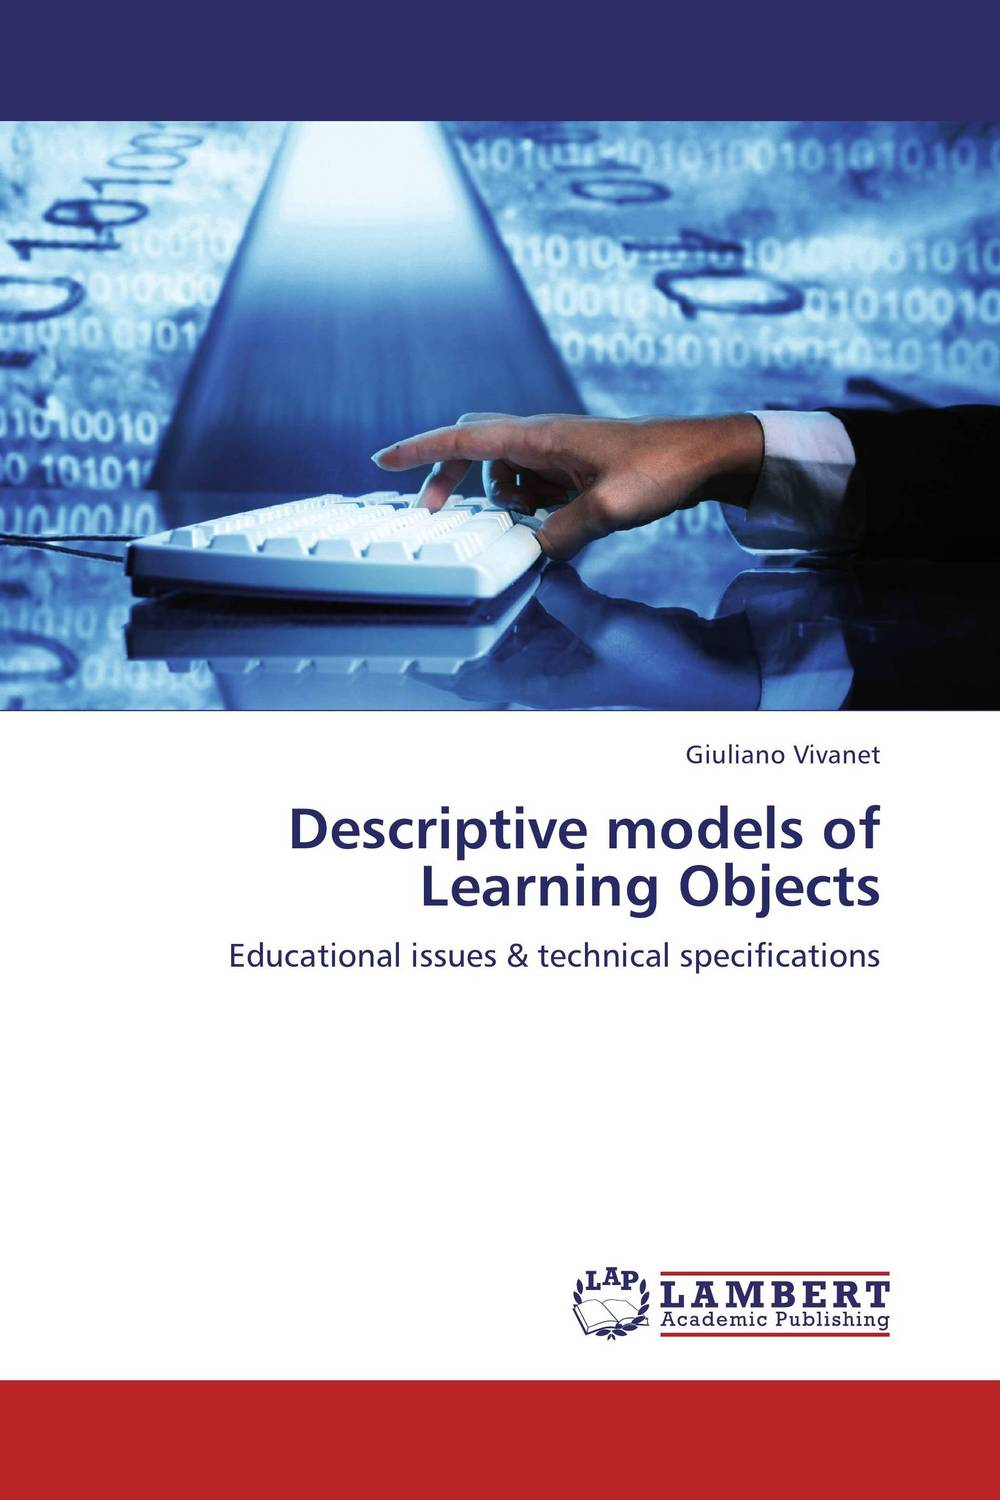 Descriptive models of Learning Objects learning resources набор пробей